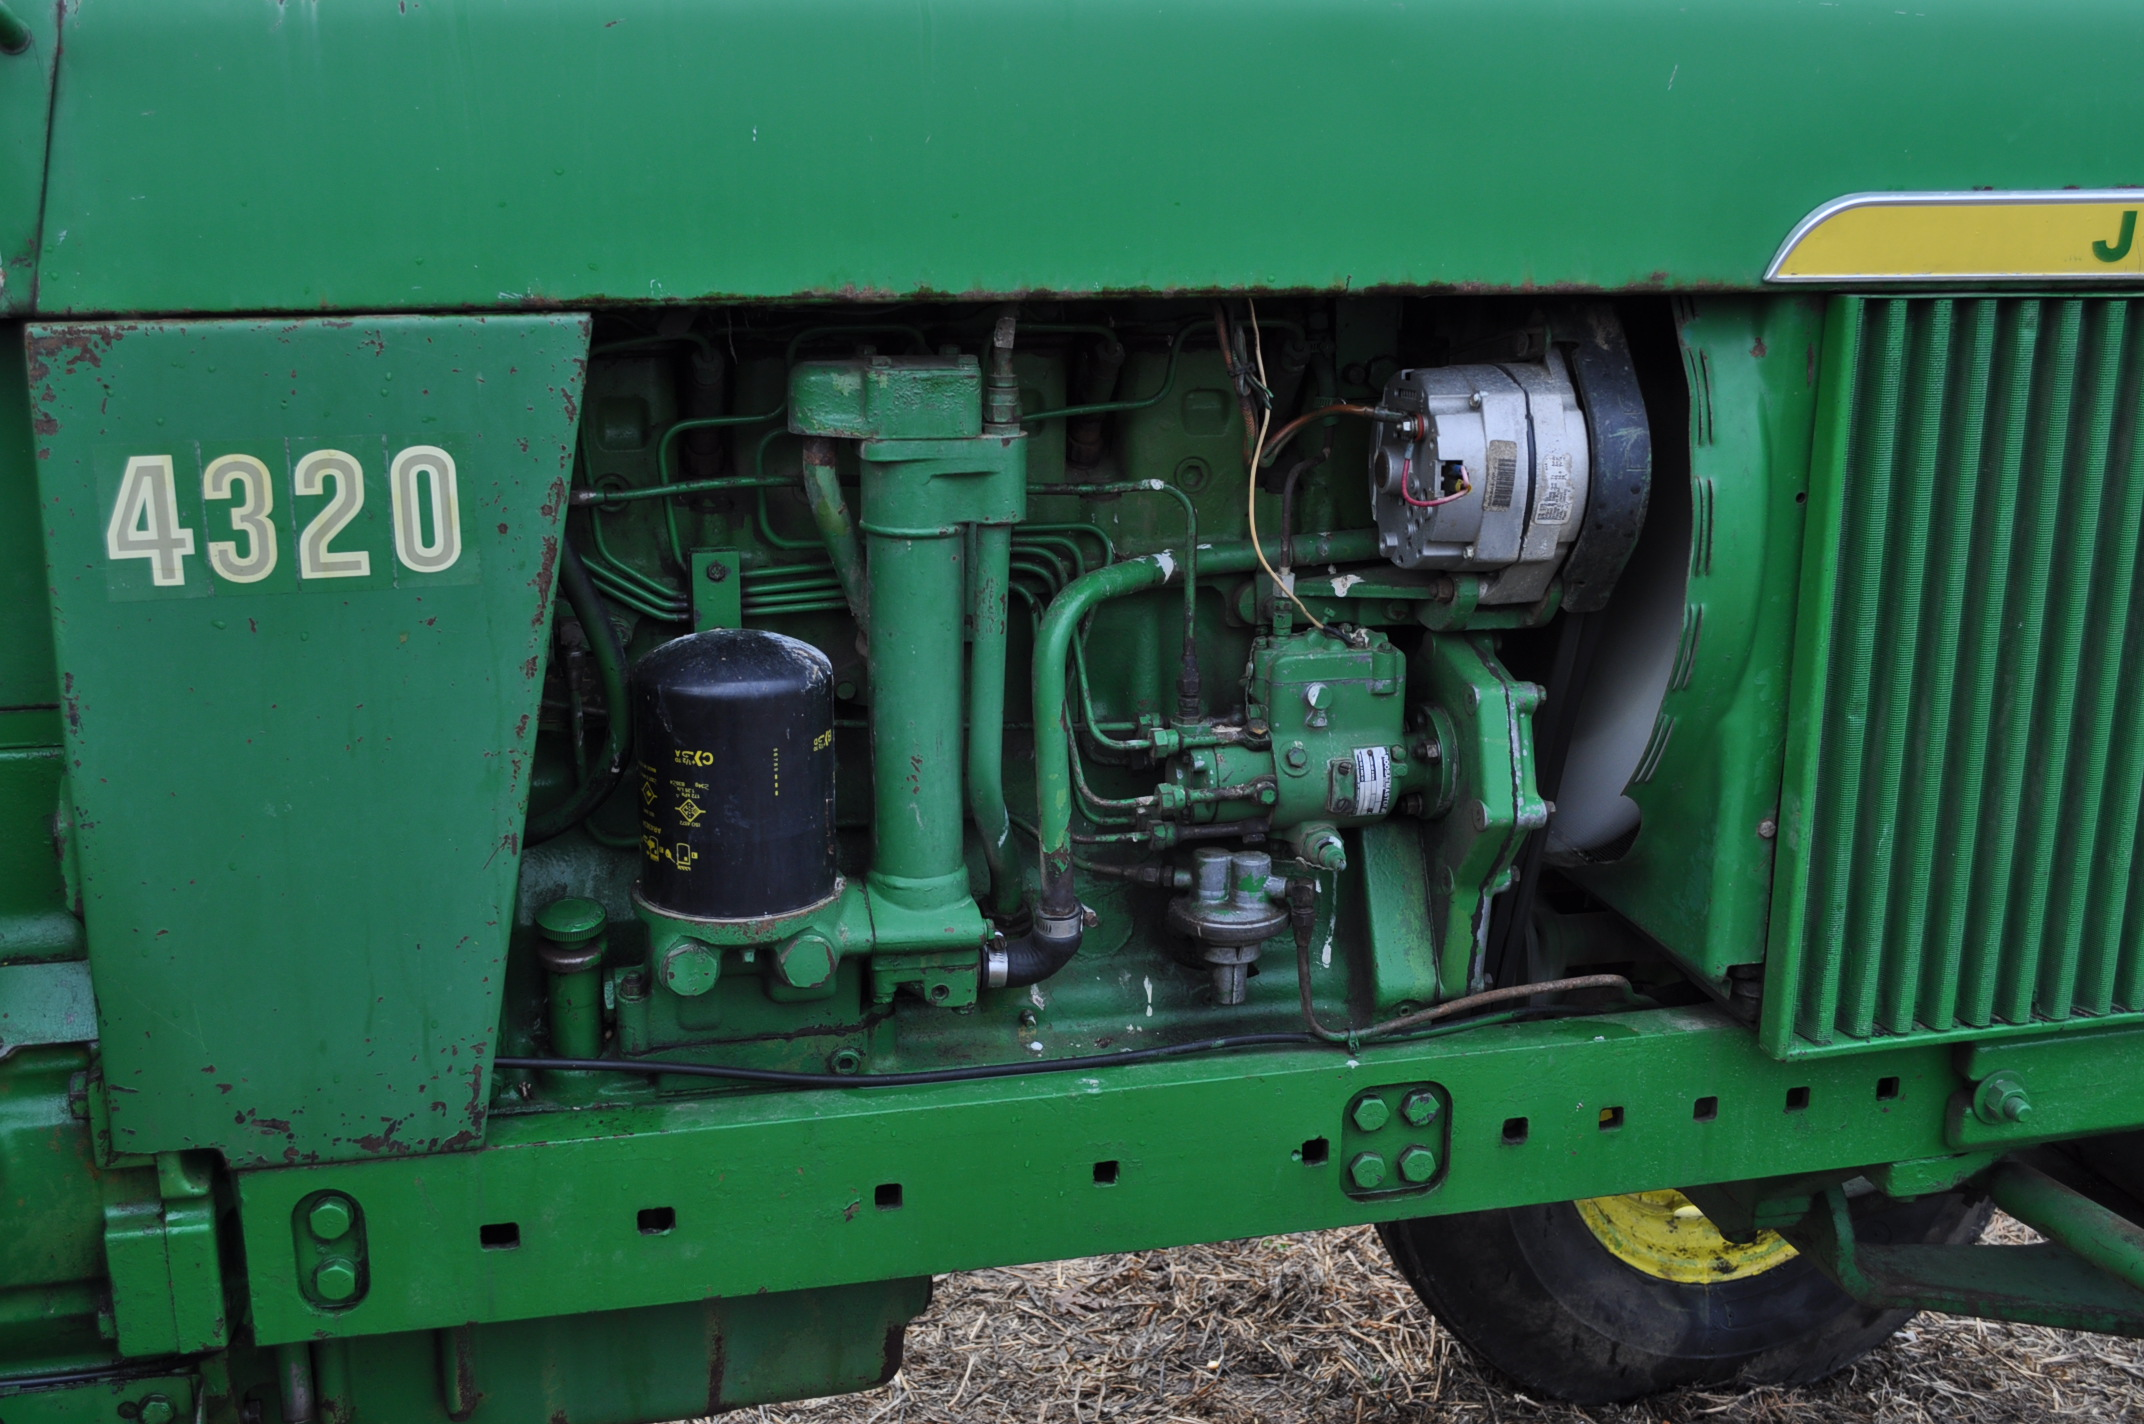 John Deere 4320 tractor, diesel, 18.4-38 duals, 10.00-16 wide front, Syncro, 2 hyd remotes, 540/1000 - Image 11 of 20